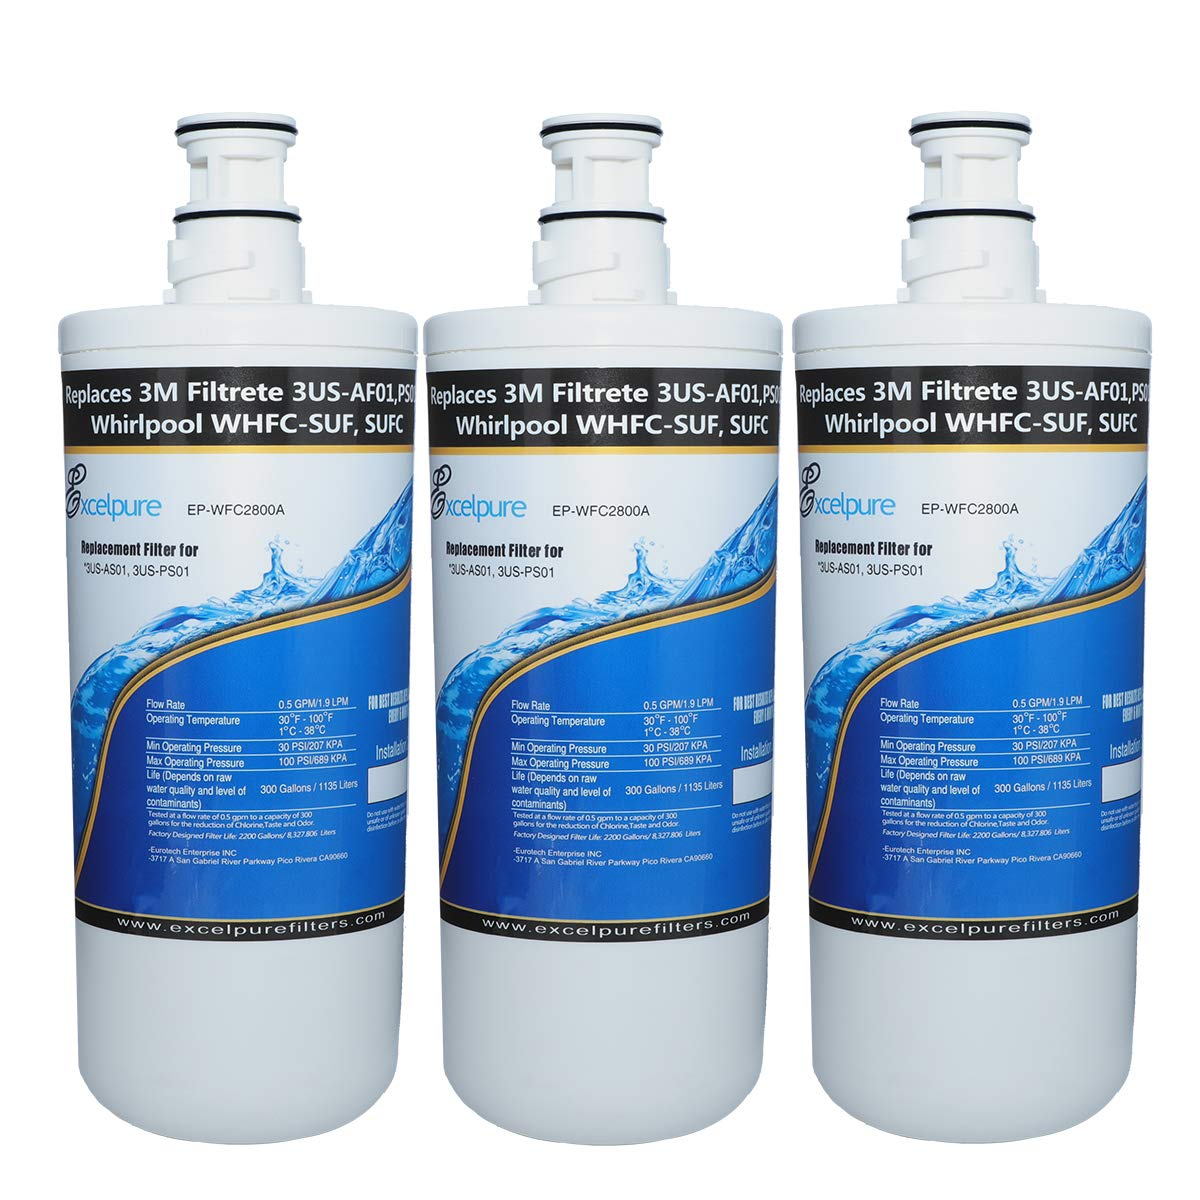 EXCELPURE Premium 3US-AF01 Undersink Standard Water Filter Replacement Compatible W/ 3M 3US-AF01, 3US-AS01, 3US-PF01, 3US-PS01, WHCF-SRC, WHCF-SUFC, WHCF-SUF - 3PACK by EXCELPURE